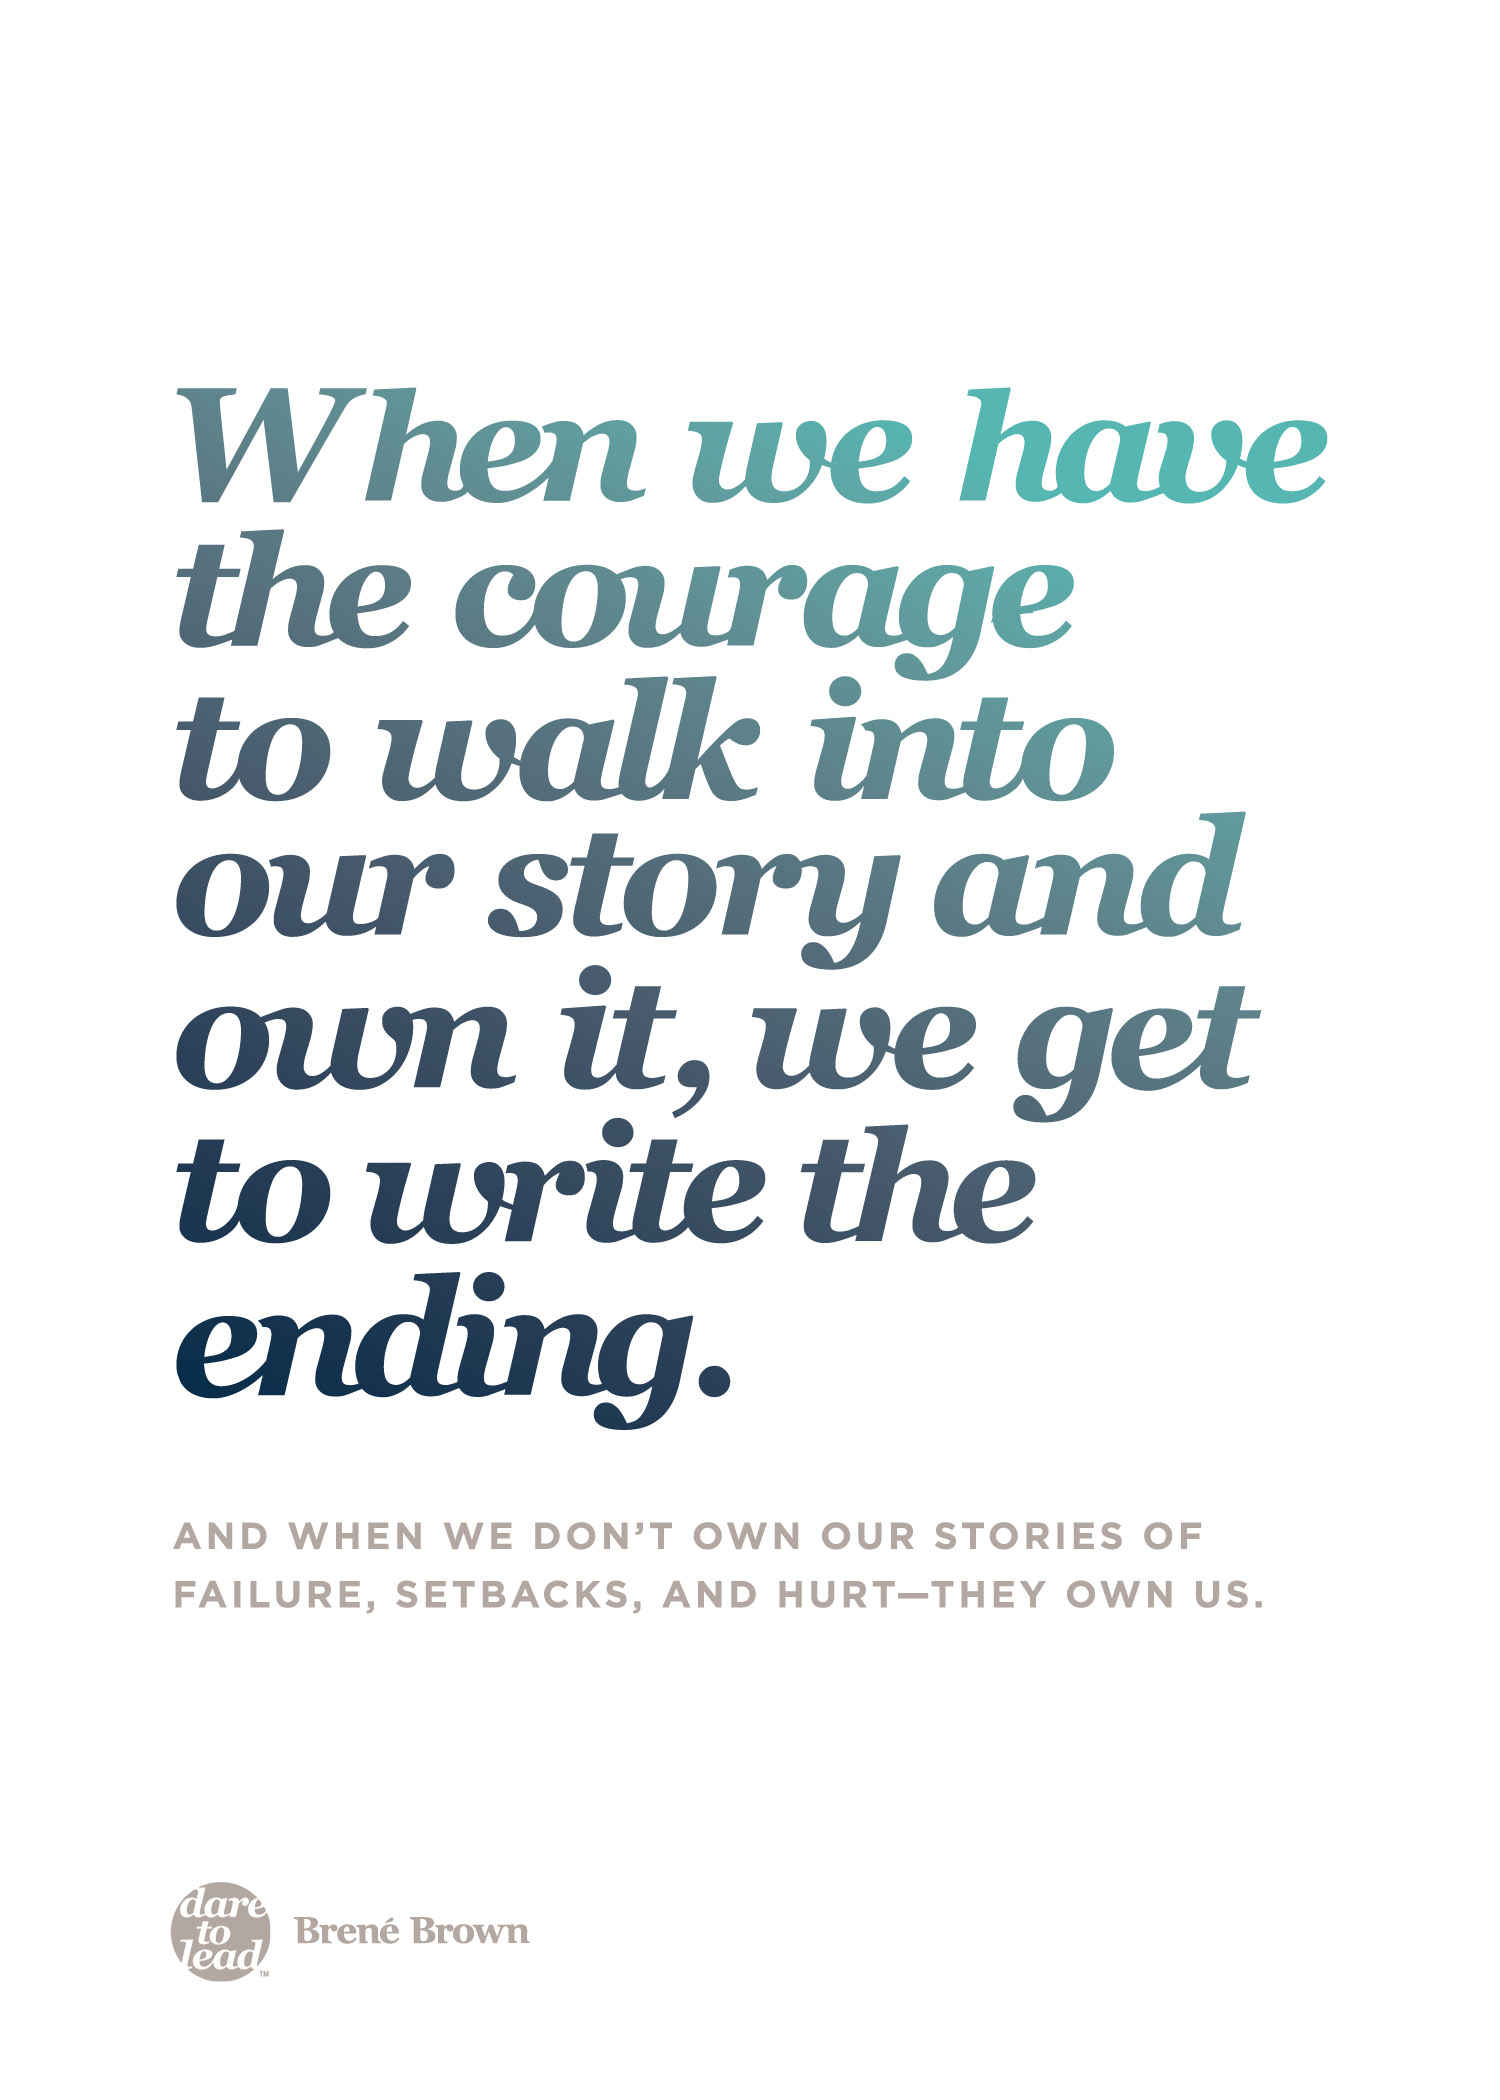 """When we have the courage to walk into our story and own it, we get to write the ending. And when we don't own our stories of failure, setbacks, and hurt - they own us."" - Brené Brown"